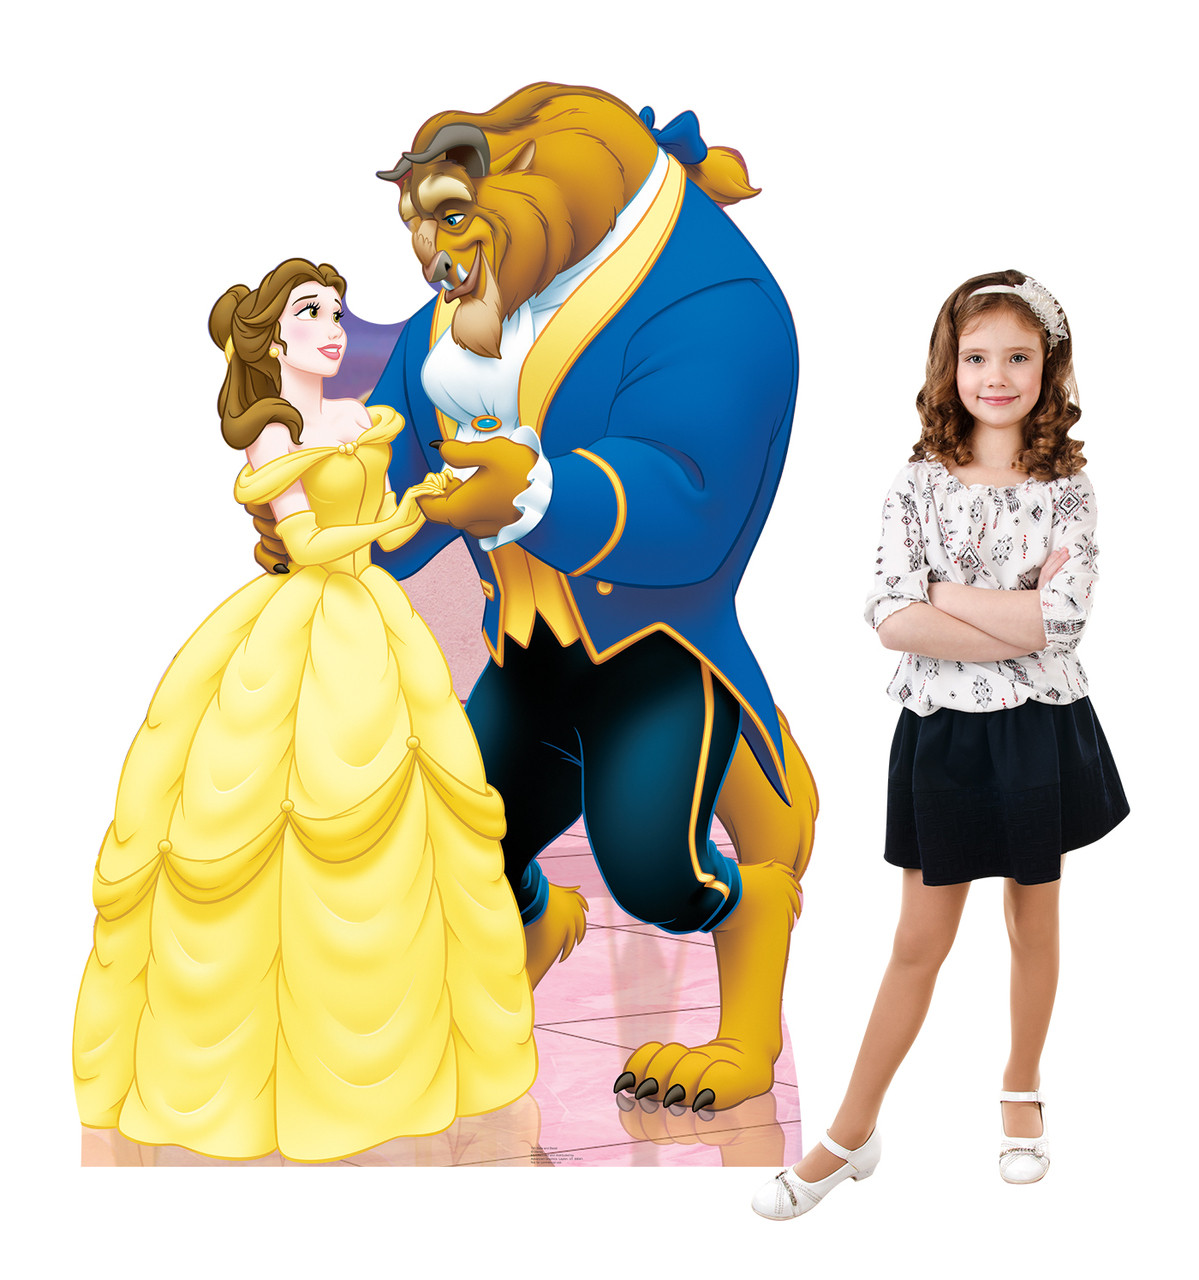 Belle and Beast (Beauty and the Beast) Cardboard Cutout front and back view